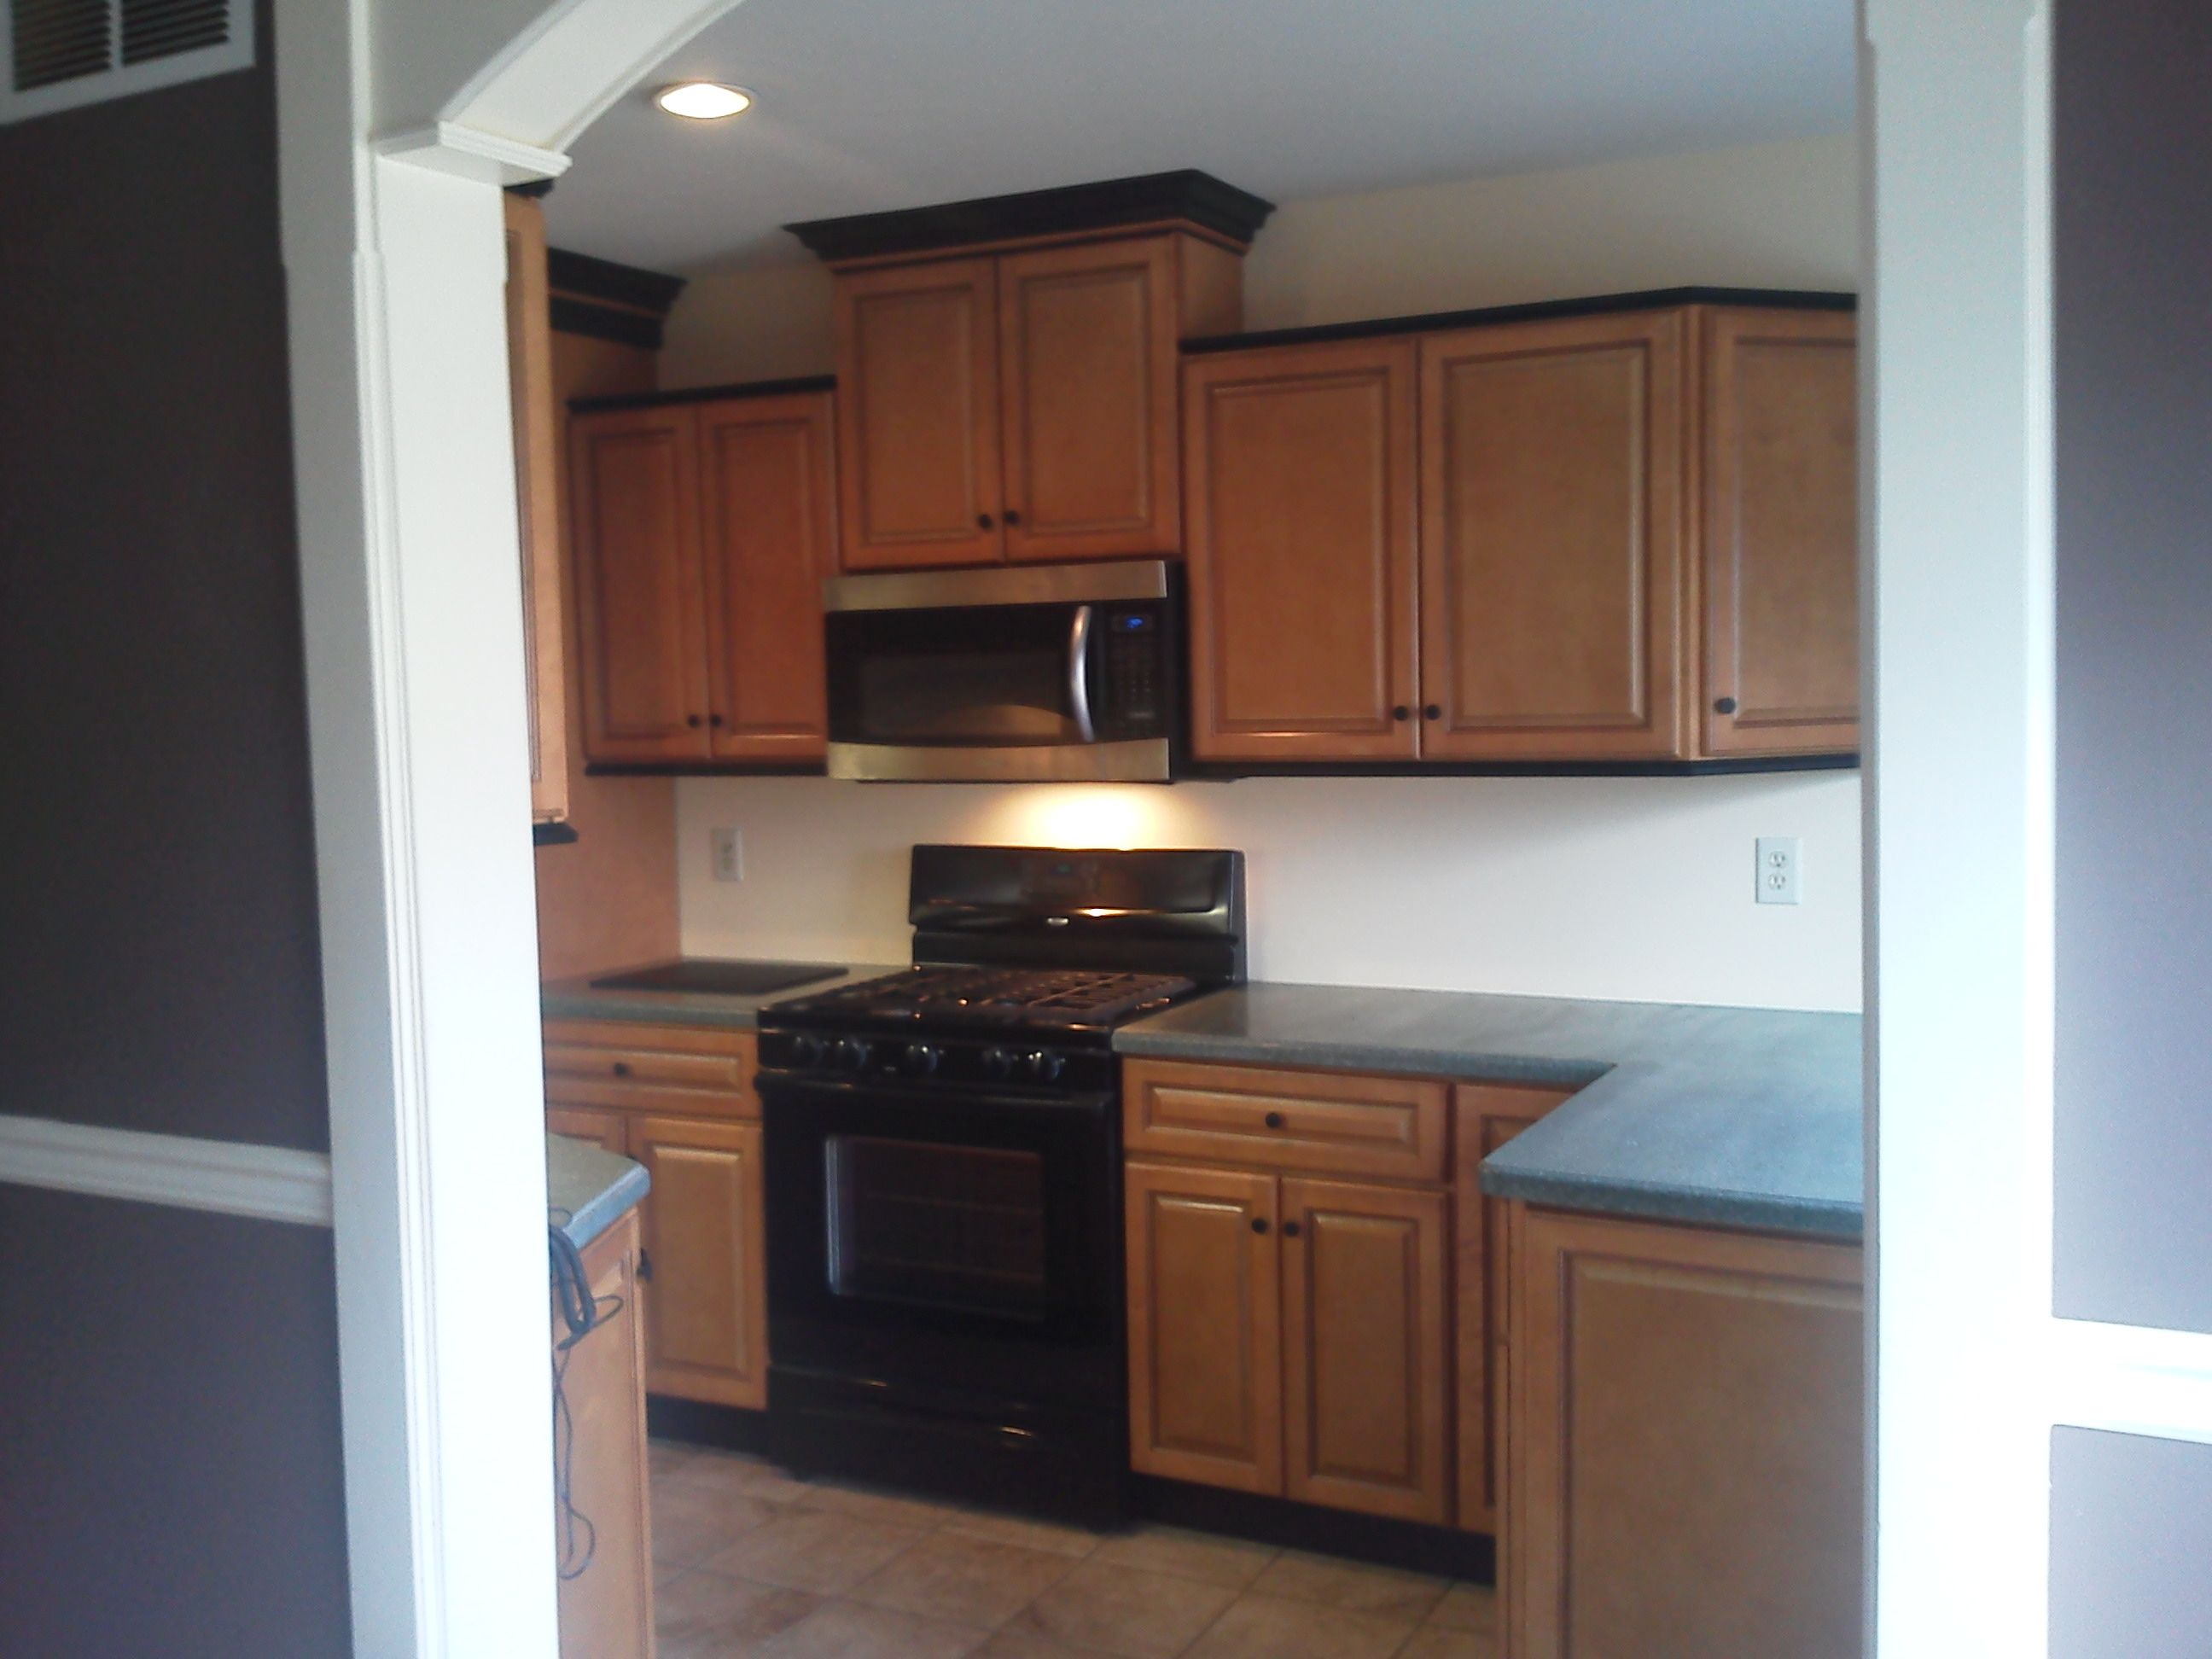 Madison Toffee Kitchen Cabinets Design Ideas Kitchen Cabinet Storage Kitchen Cabinet Design Kitchen Ceiling